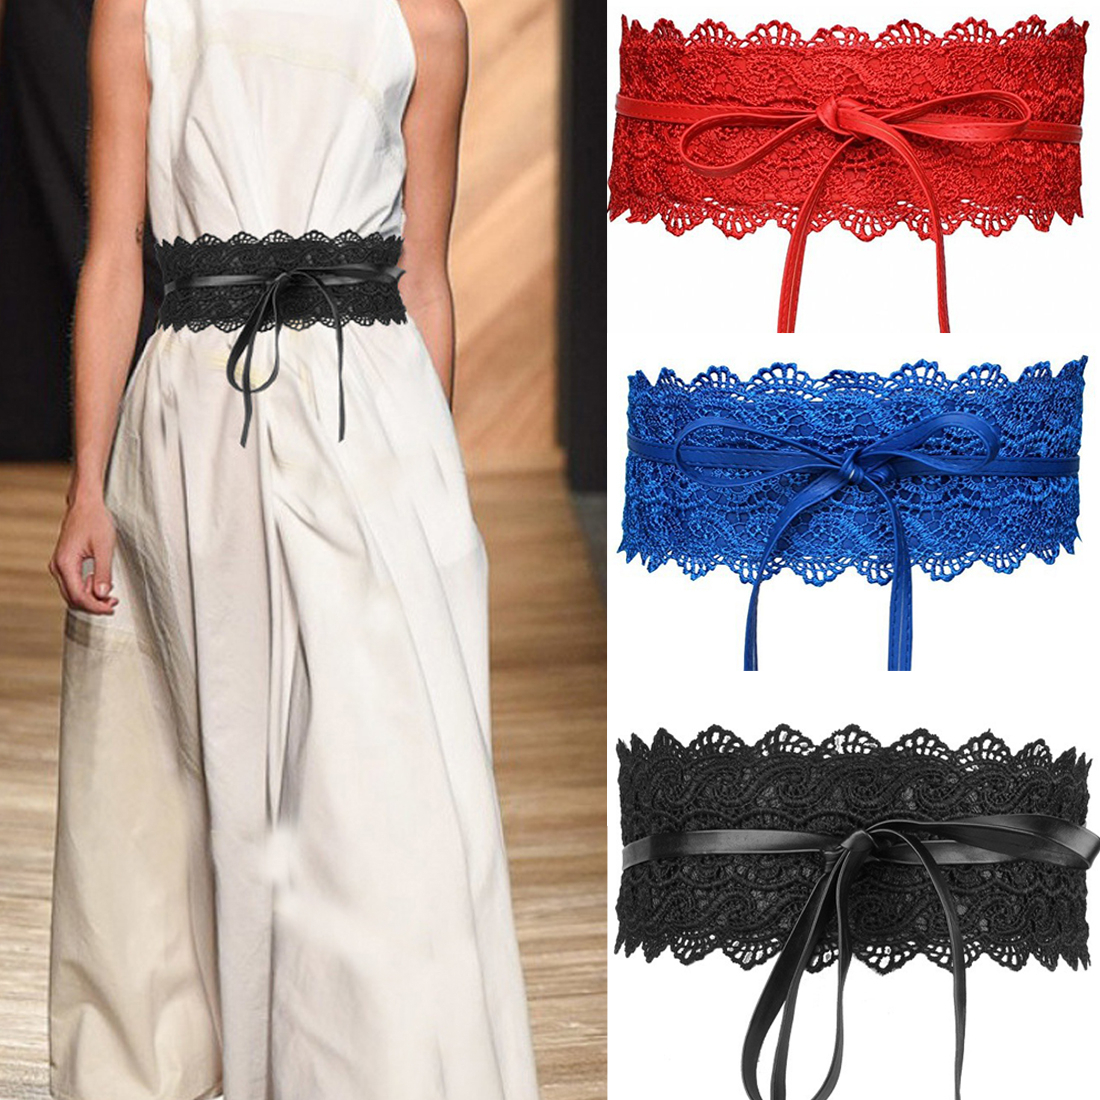 Jessie Women 2019 Wide Lace Corset Waist Belt Slim Fit Belts Bowknot Tie Girdle Faux Leather Cummerbunds Female Dress Waistband